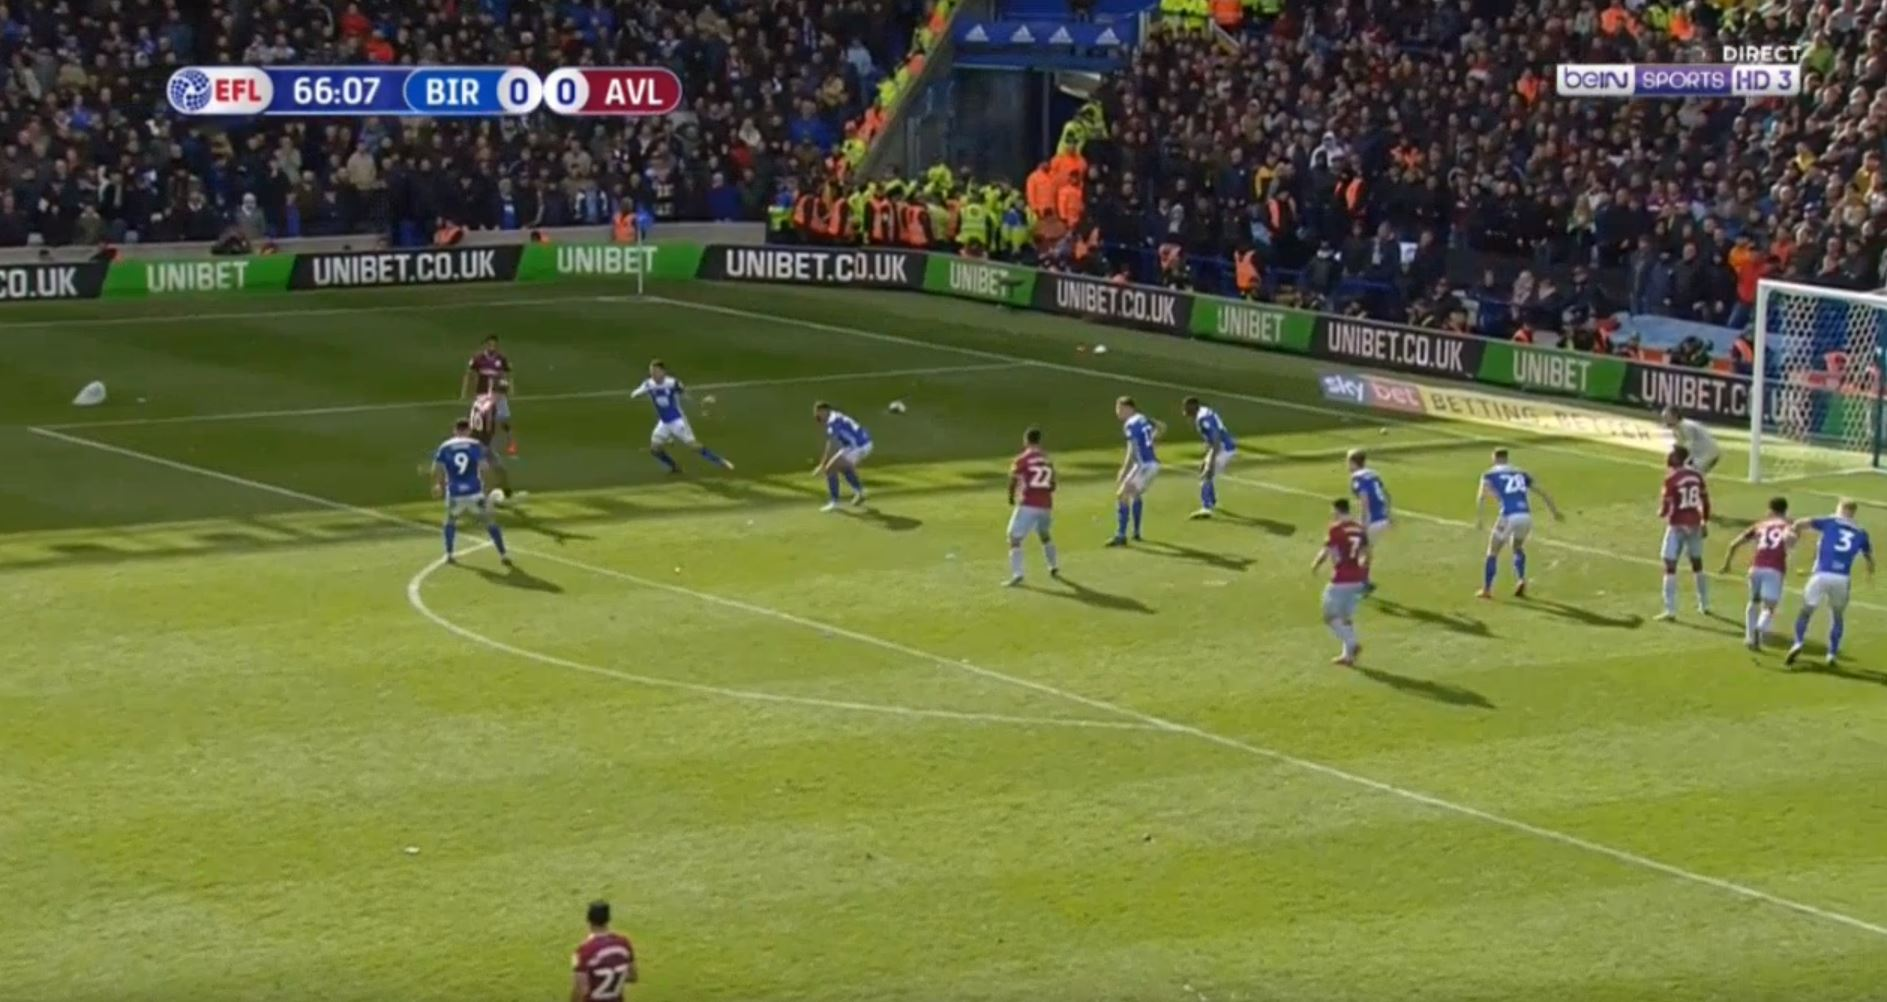 WATCH: Jack Grealish Scores And Jumps Into The Away End. Absolute Madness!